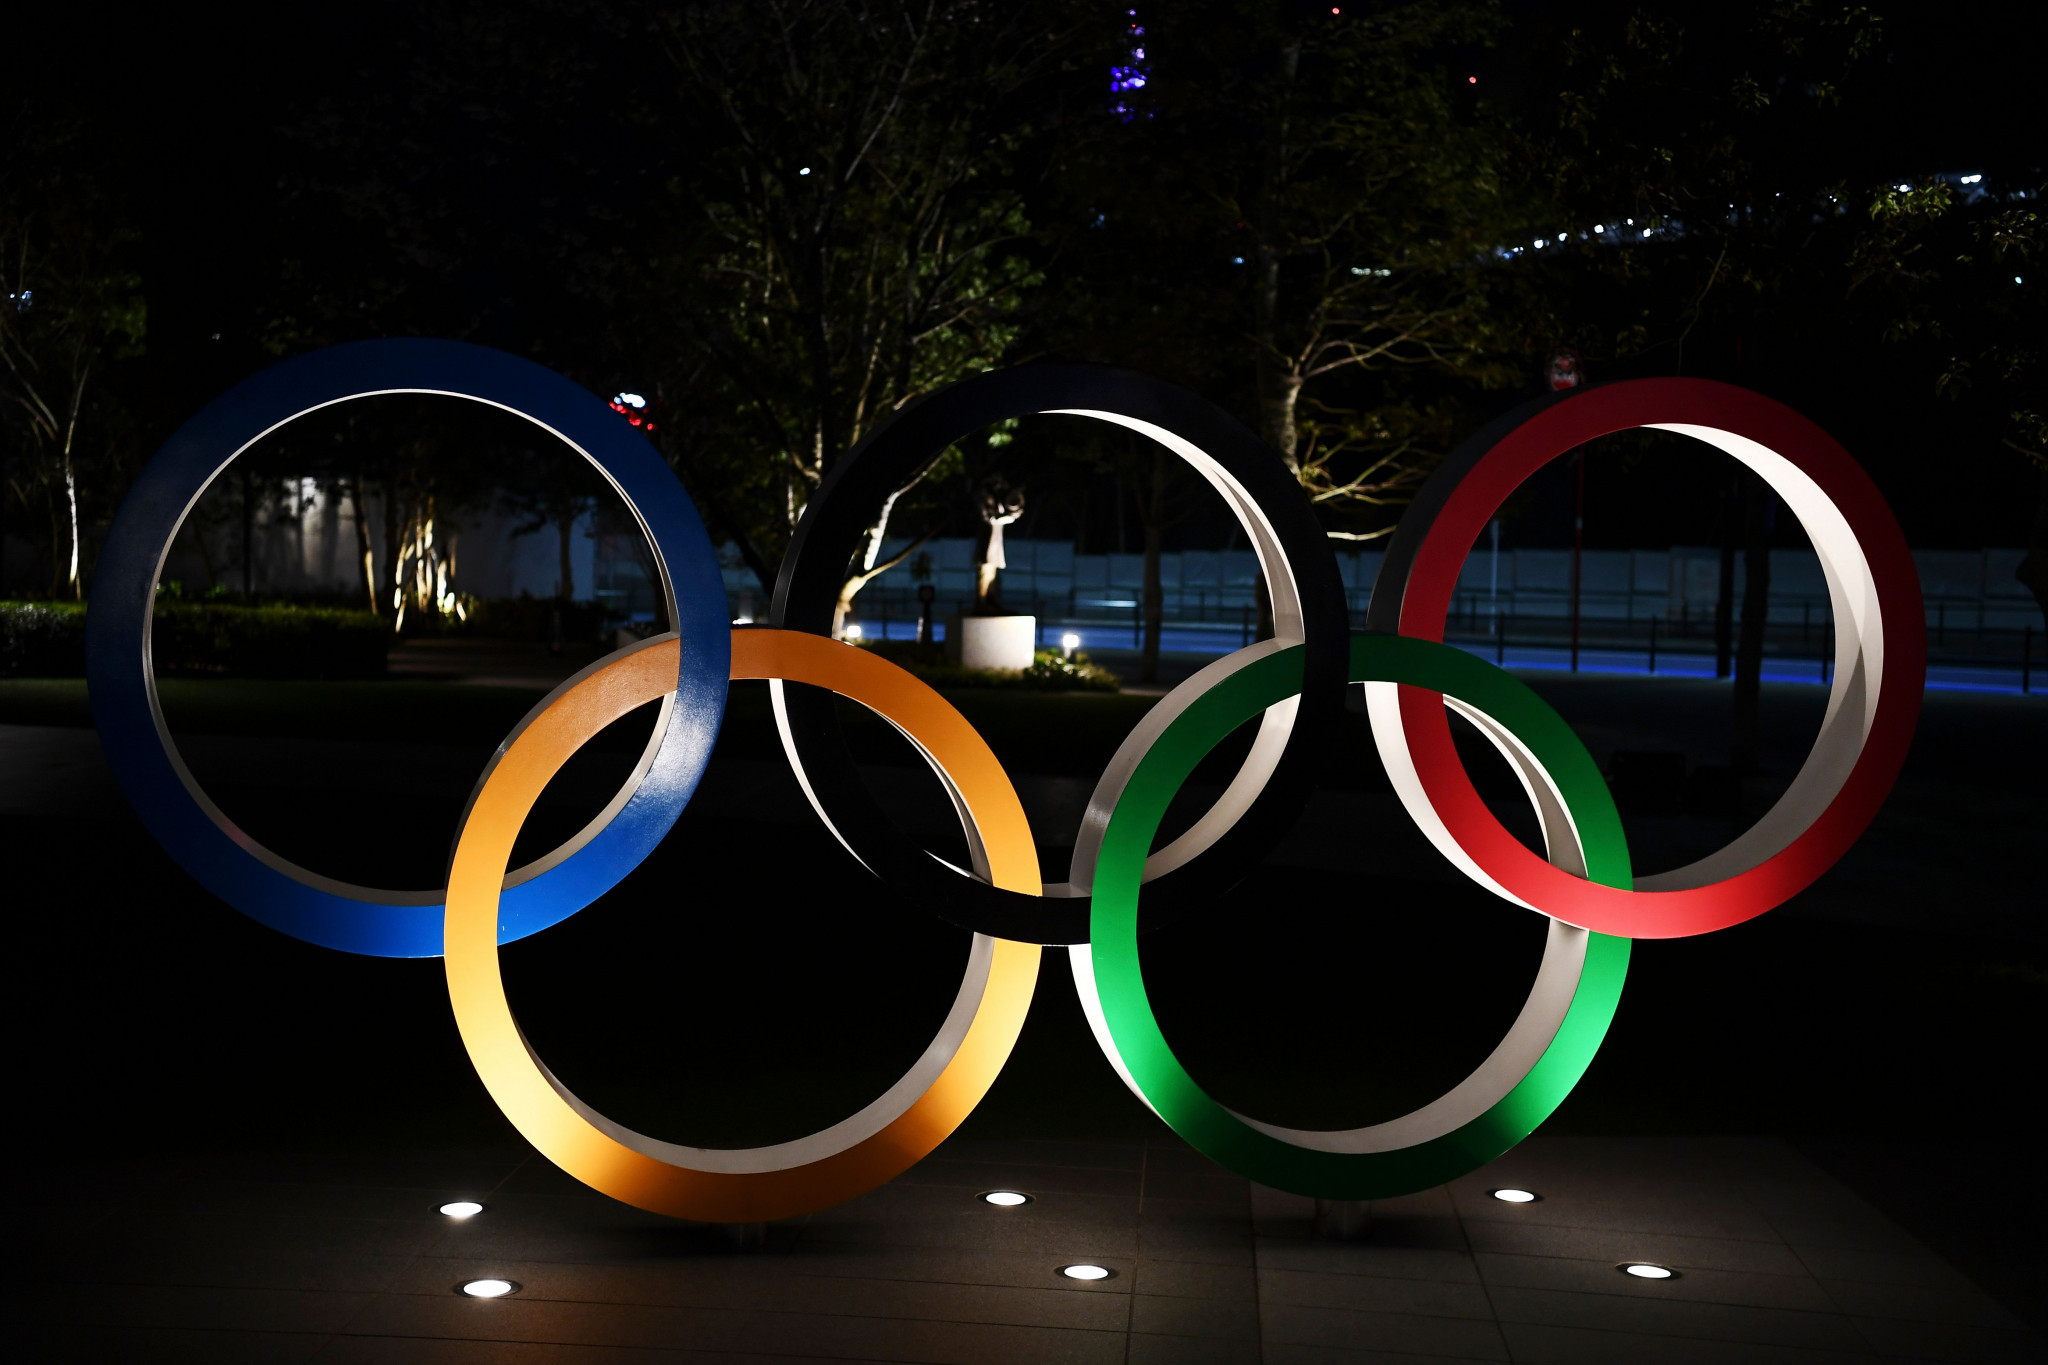 The Olympic Games in Tokyo is scheduled to take place from July 23 to August 8 2021